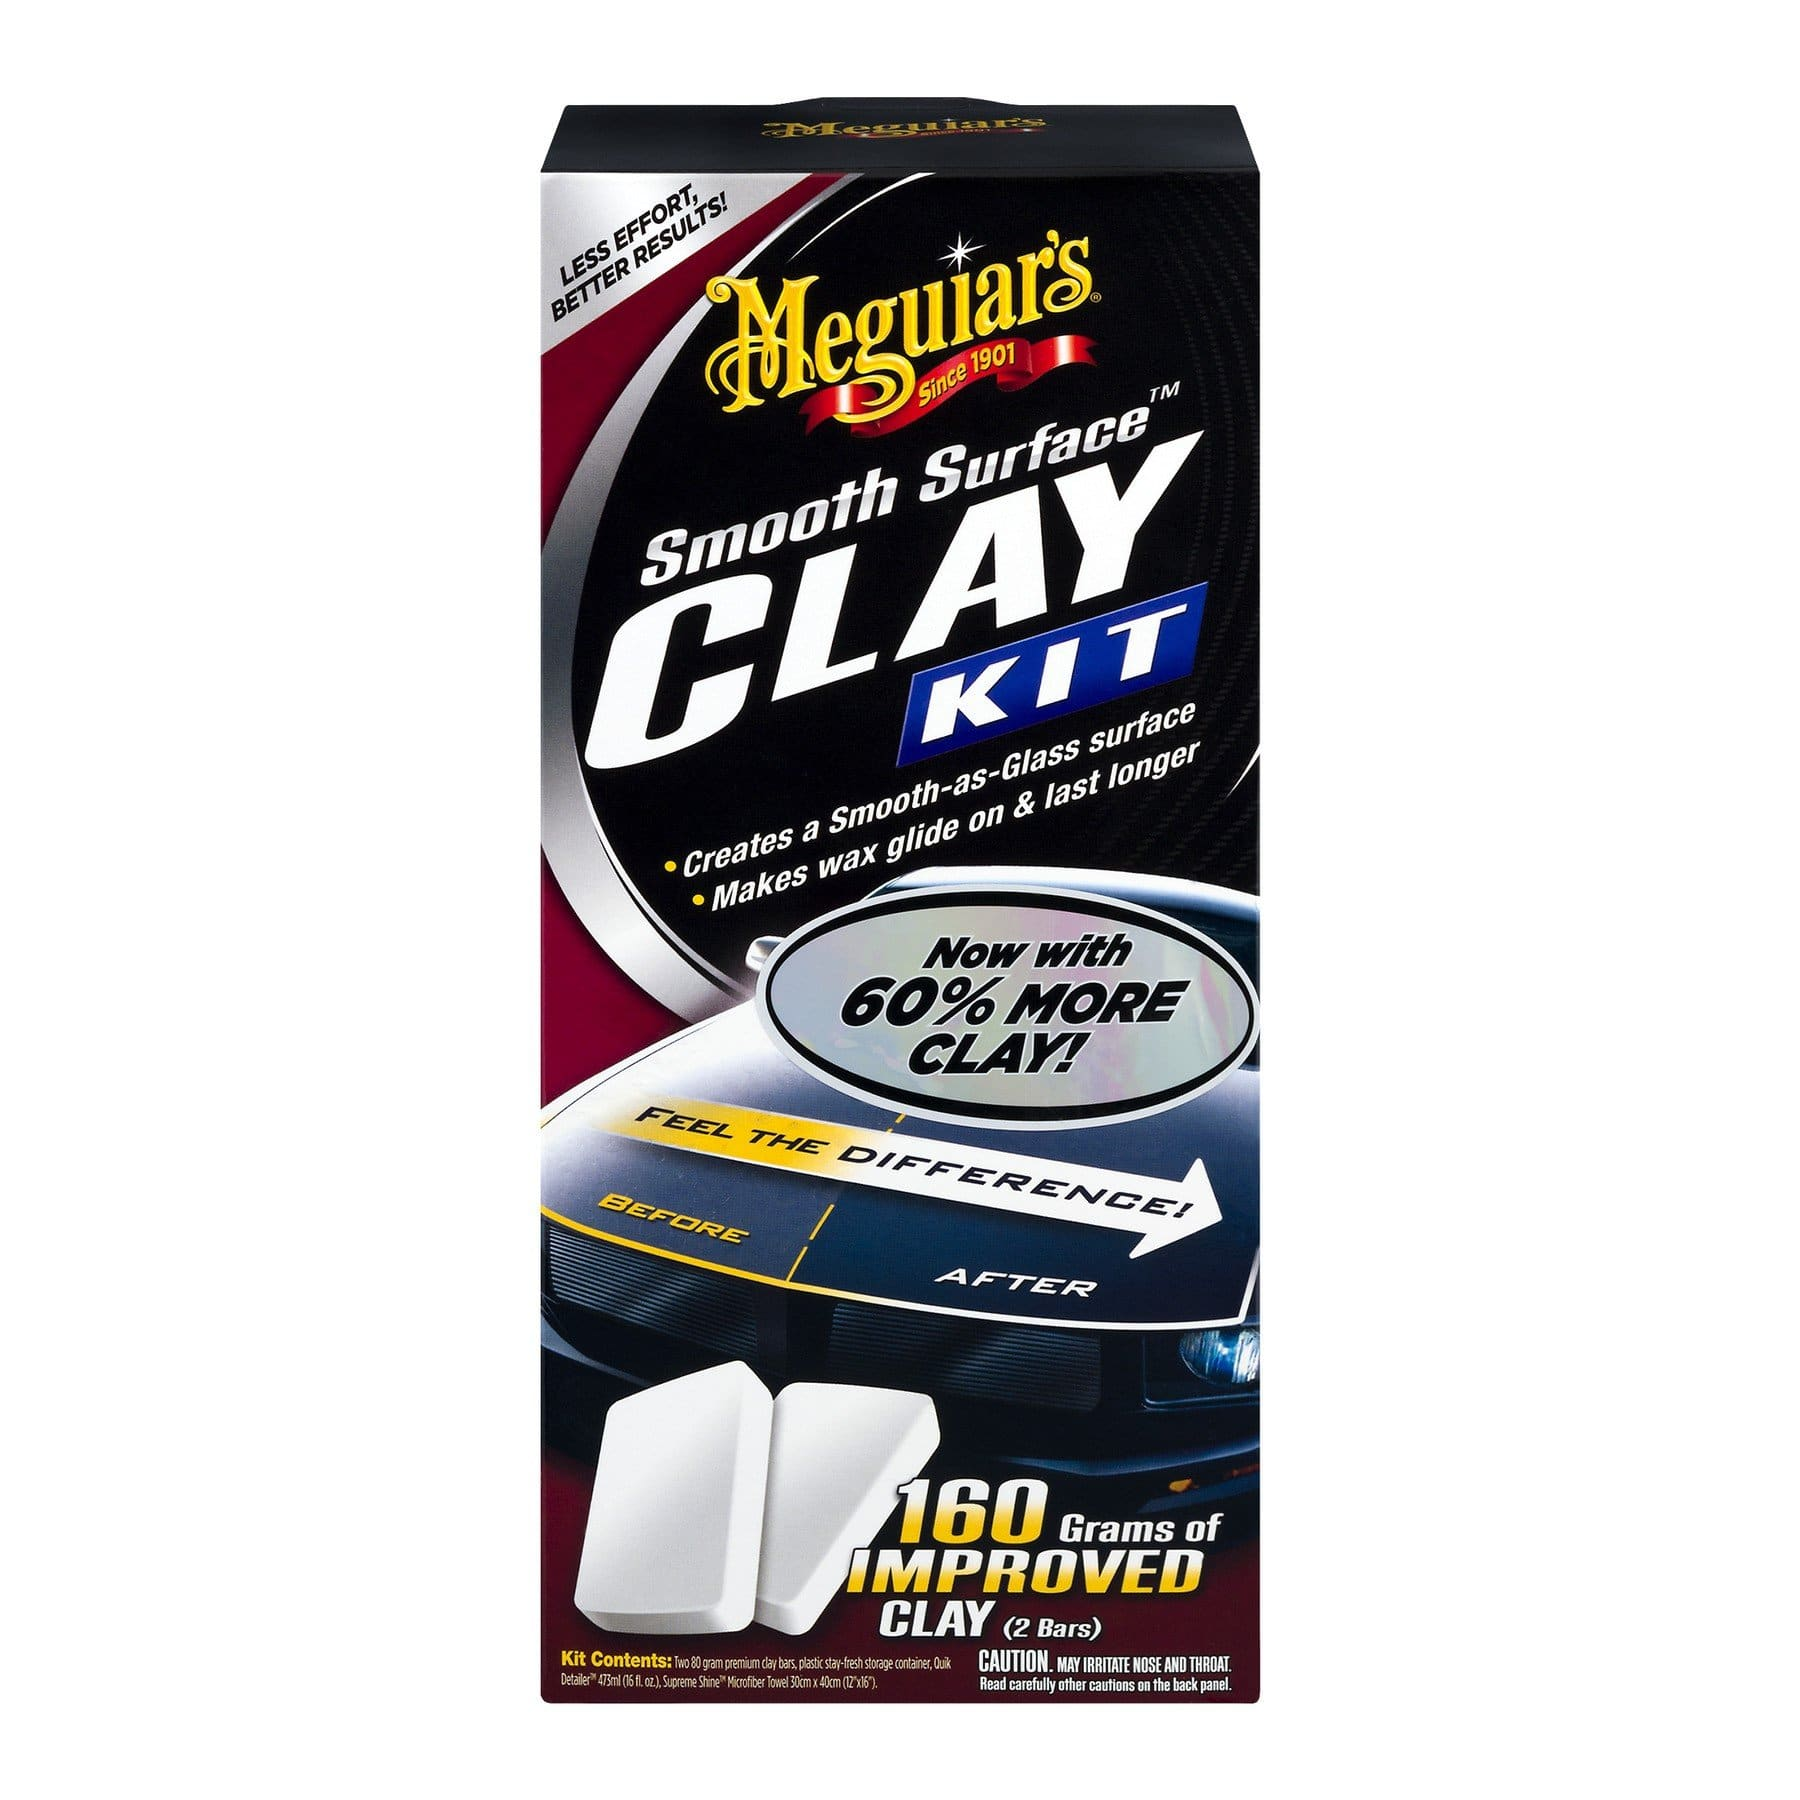 Meguiar's SMOOTH SURFACE CLAY KIT - UltimateCare - Protect Your Investment